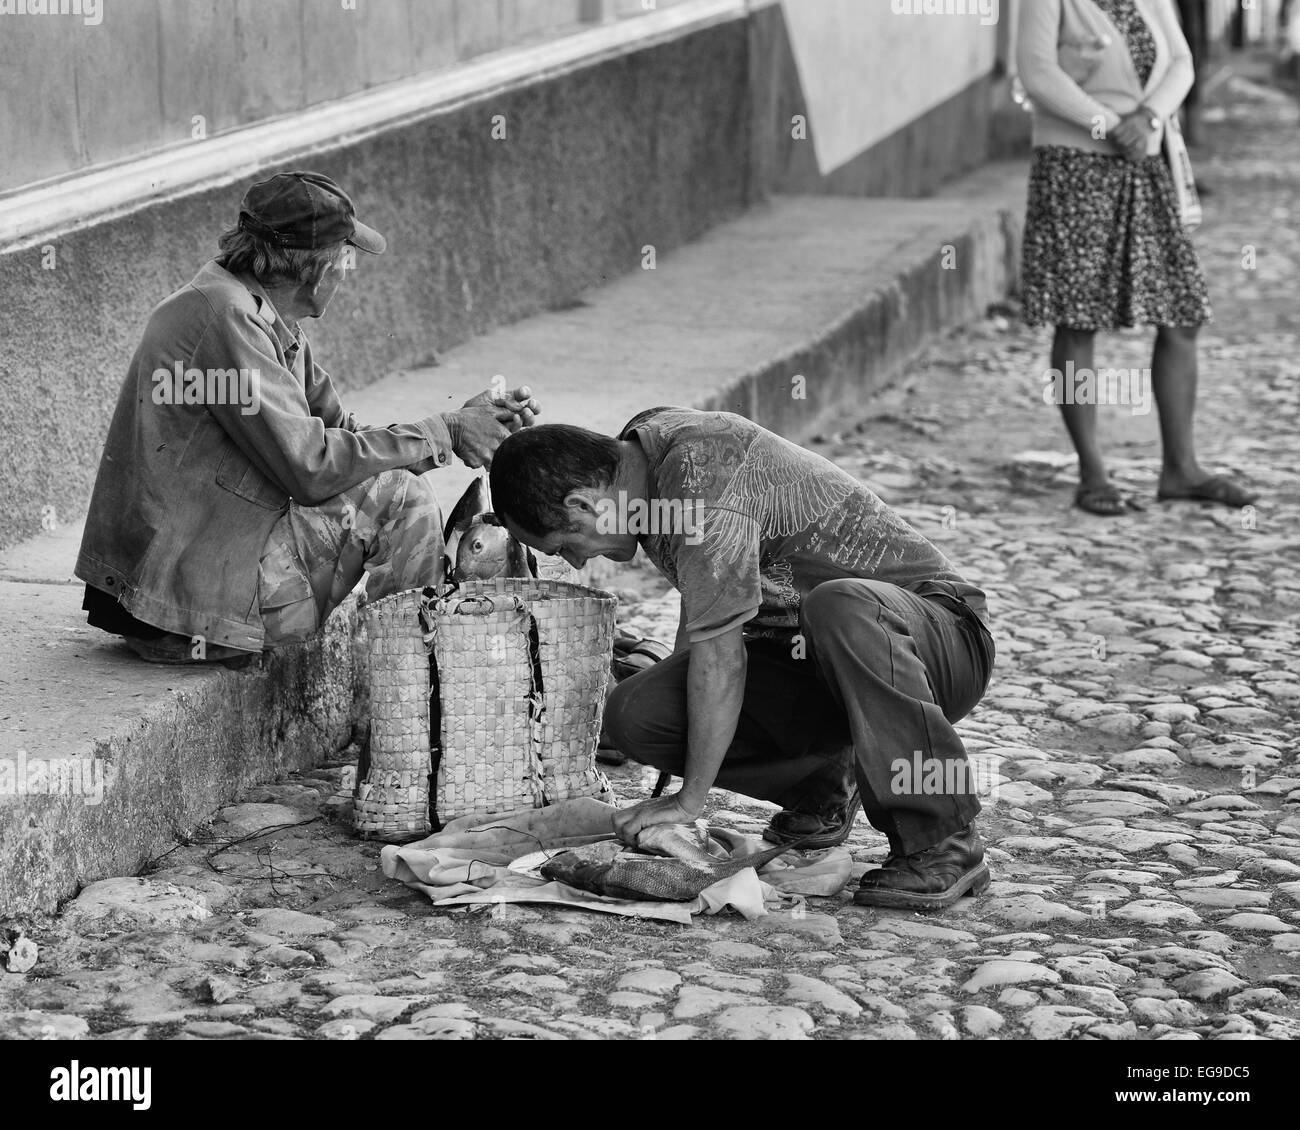 Men selling fresh fish in the streets of Trinidad, Cuba. - Stock Image